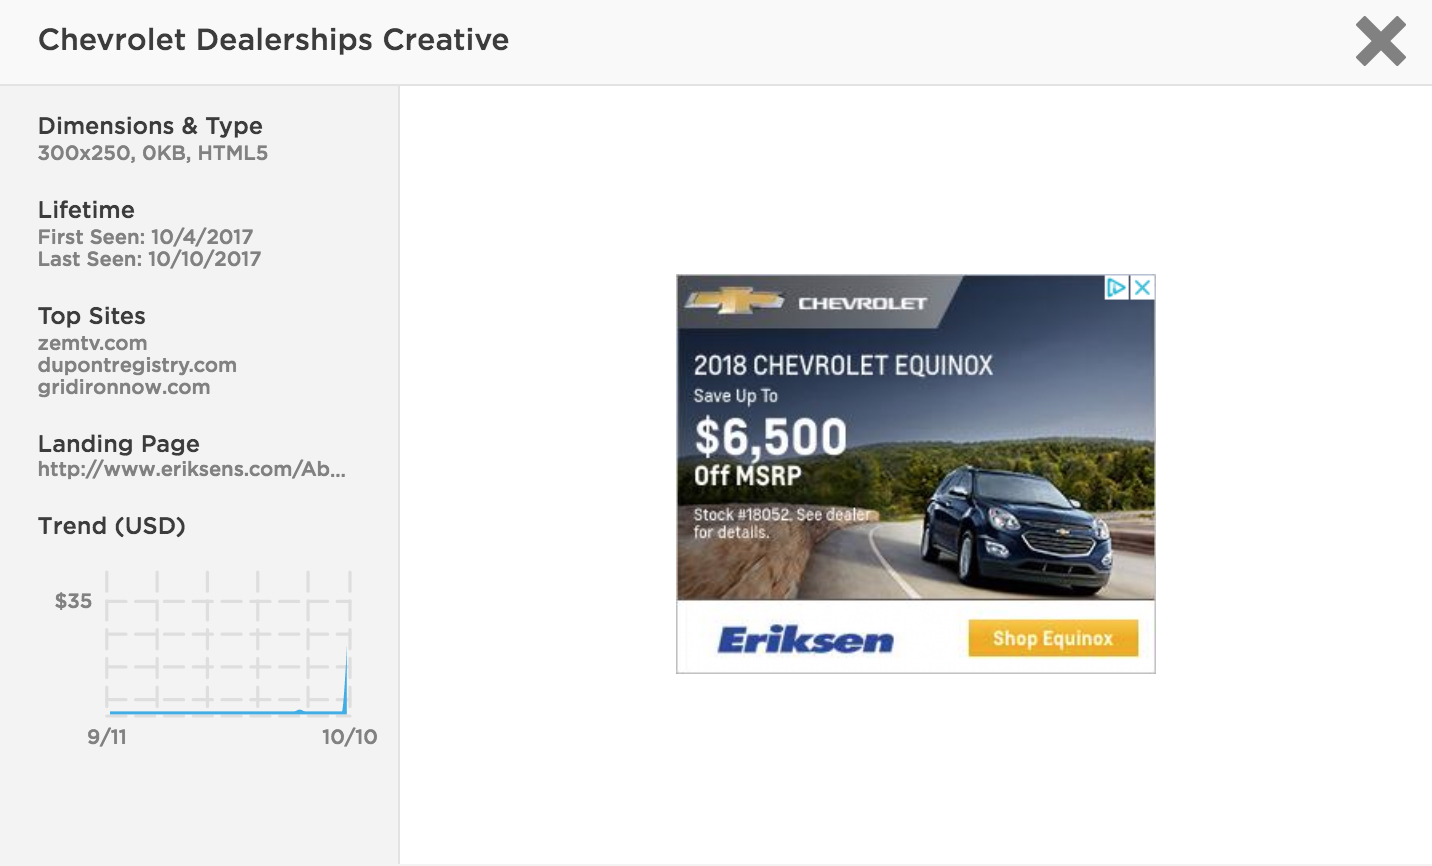 chevy_dealerships_creative.png